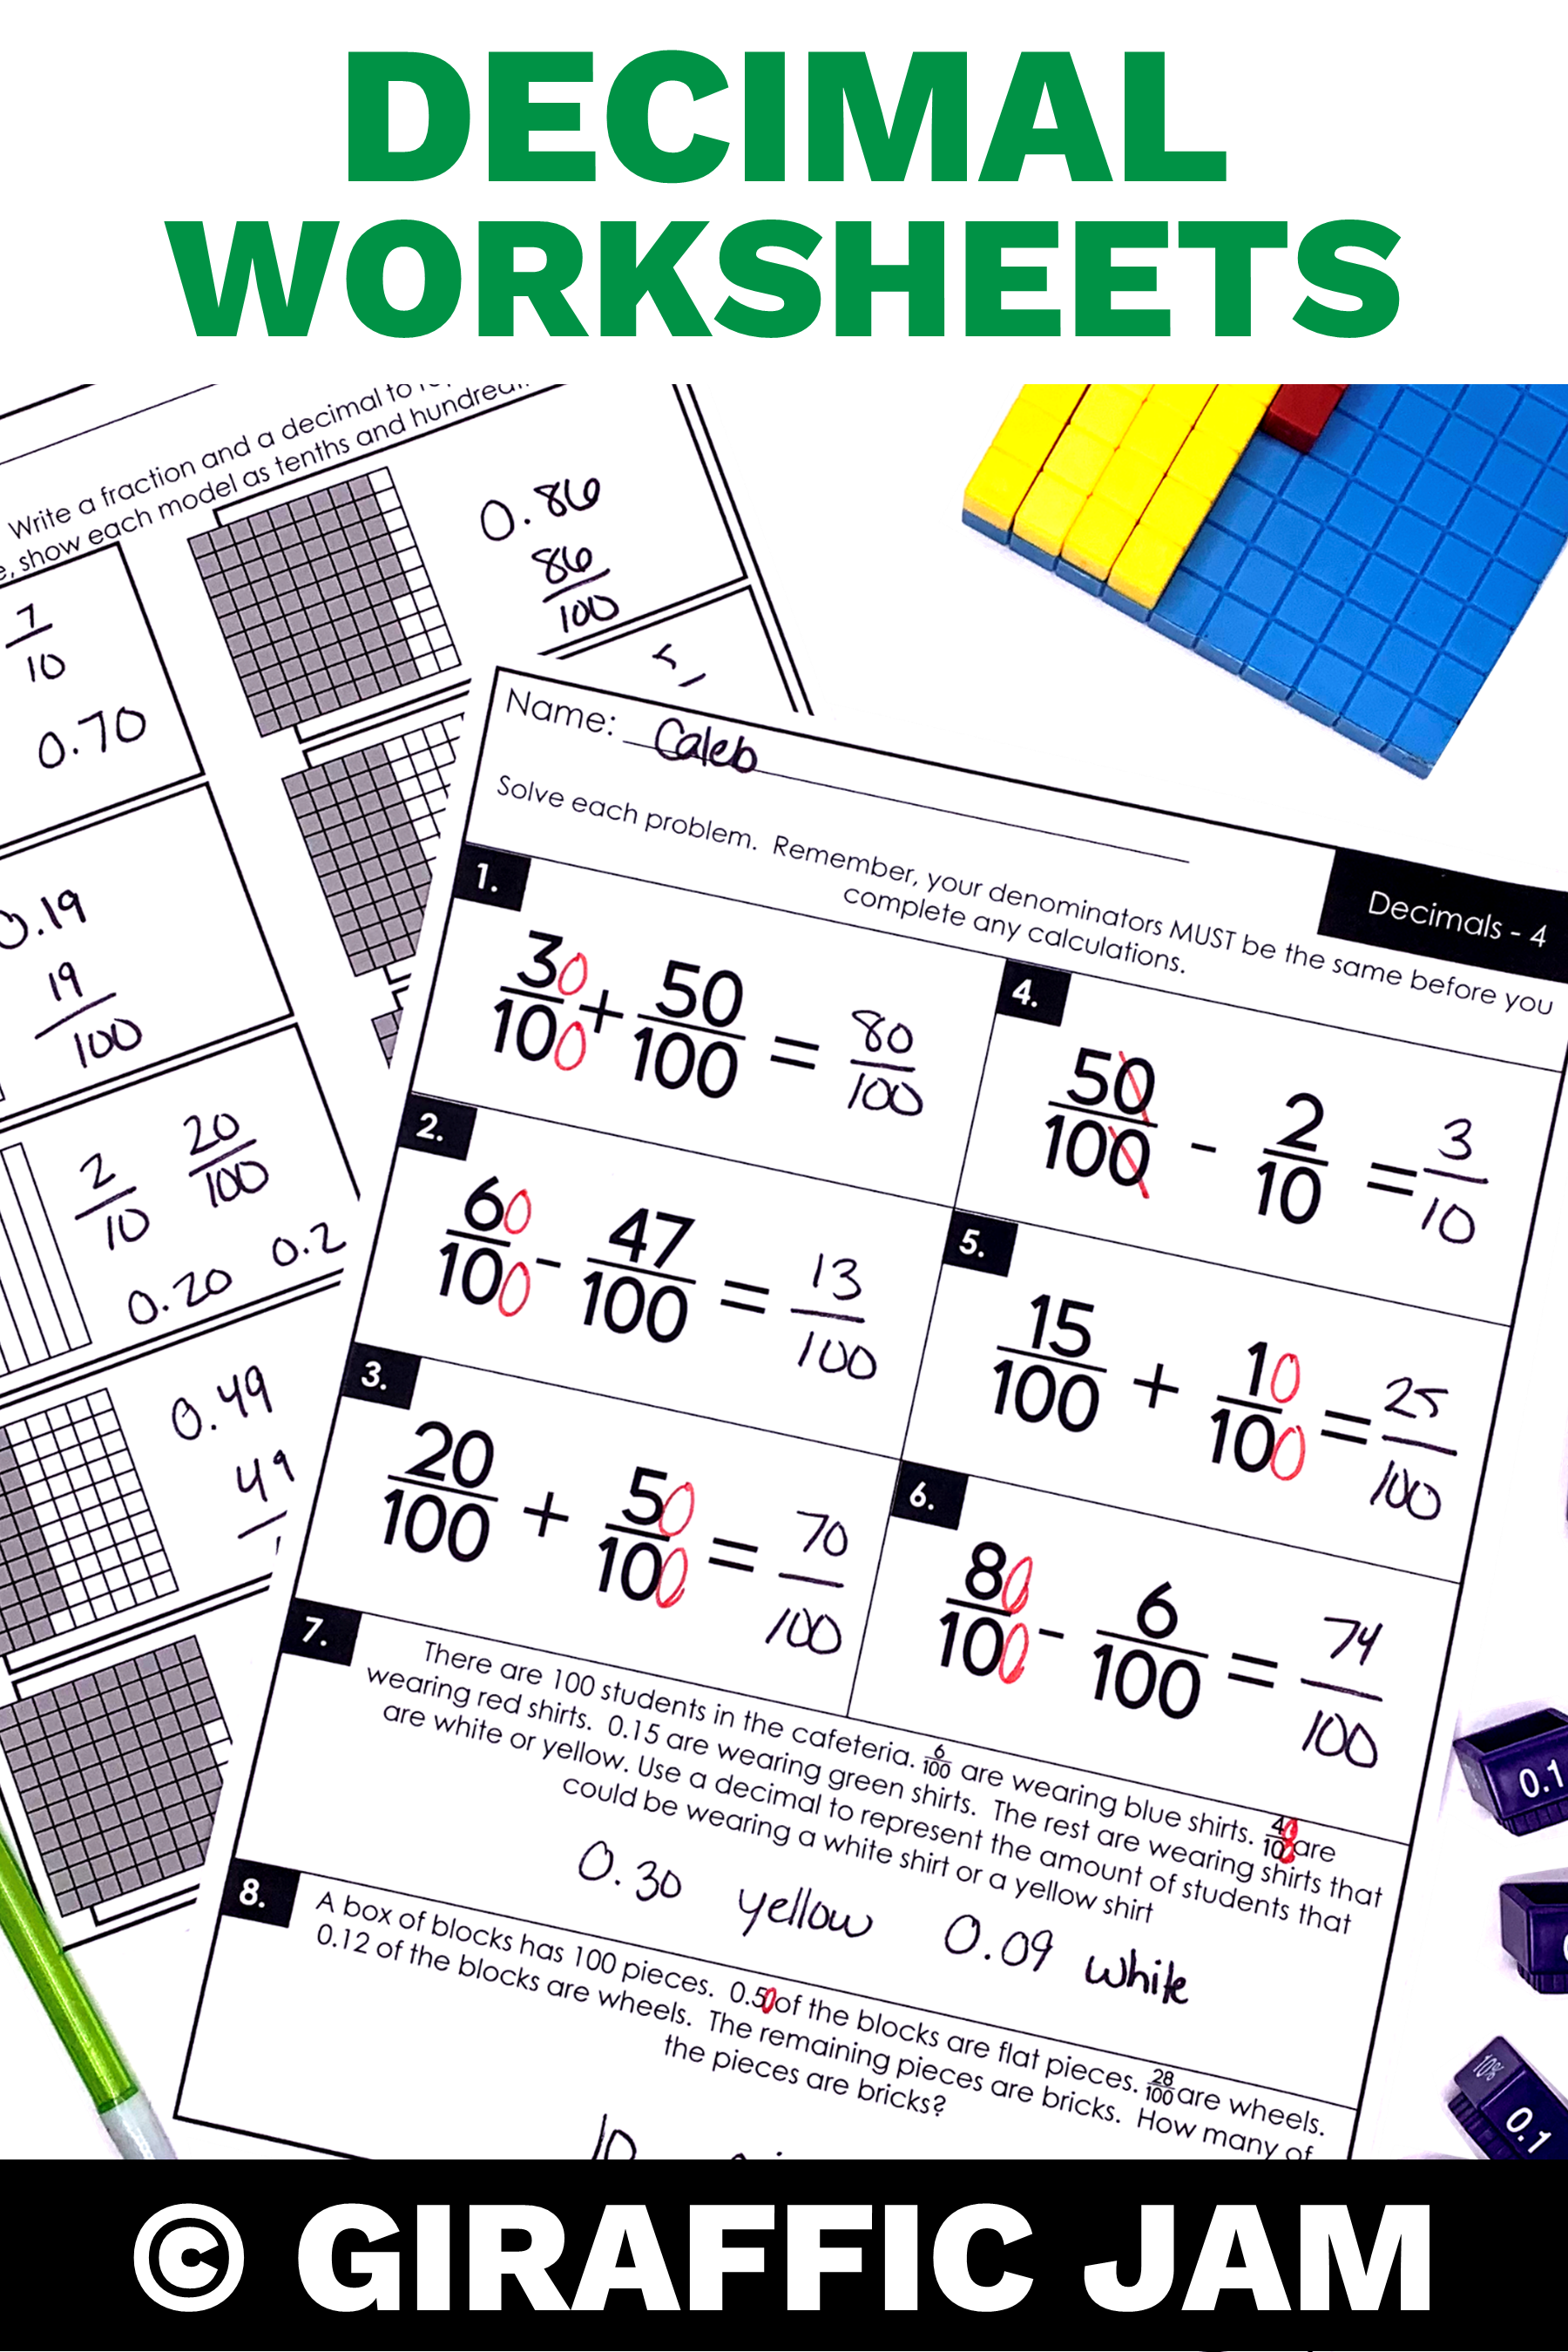 4th Grade Fractions Decimals Fraction Worksheets 4th Grade Math Worksheets Fraction H Fractions Elementary Teaching Fractions 4th Grade Math Worksheets